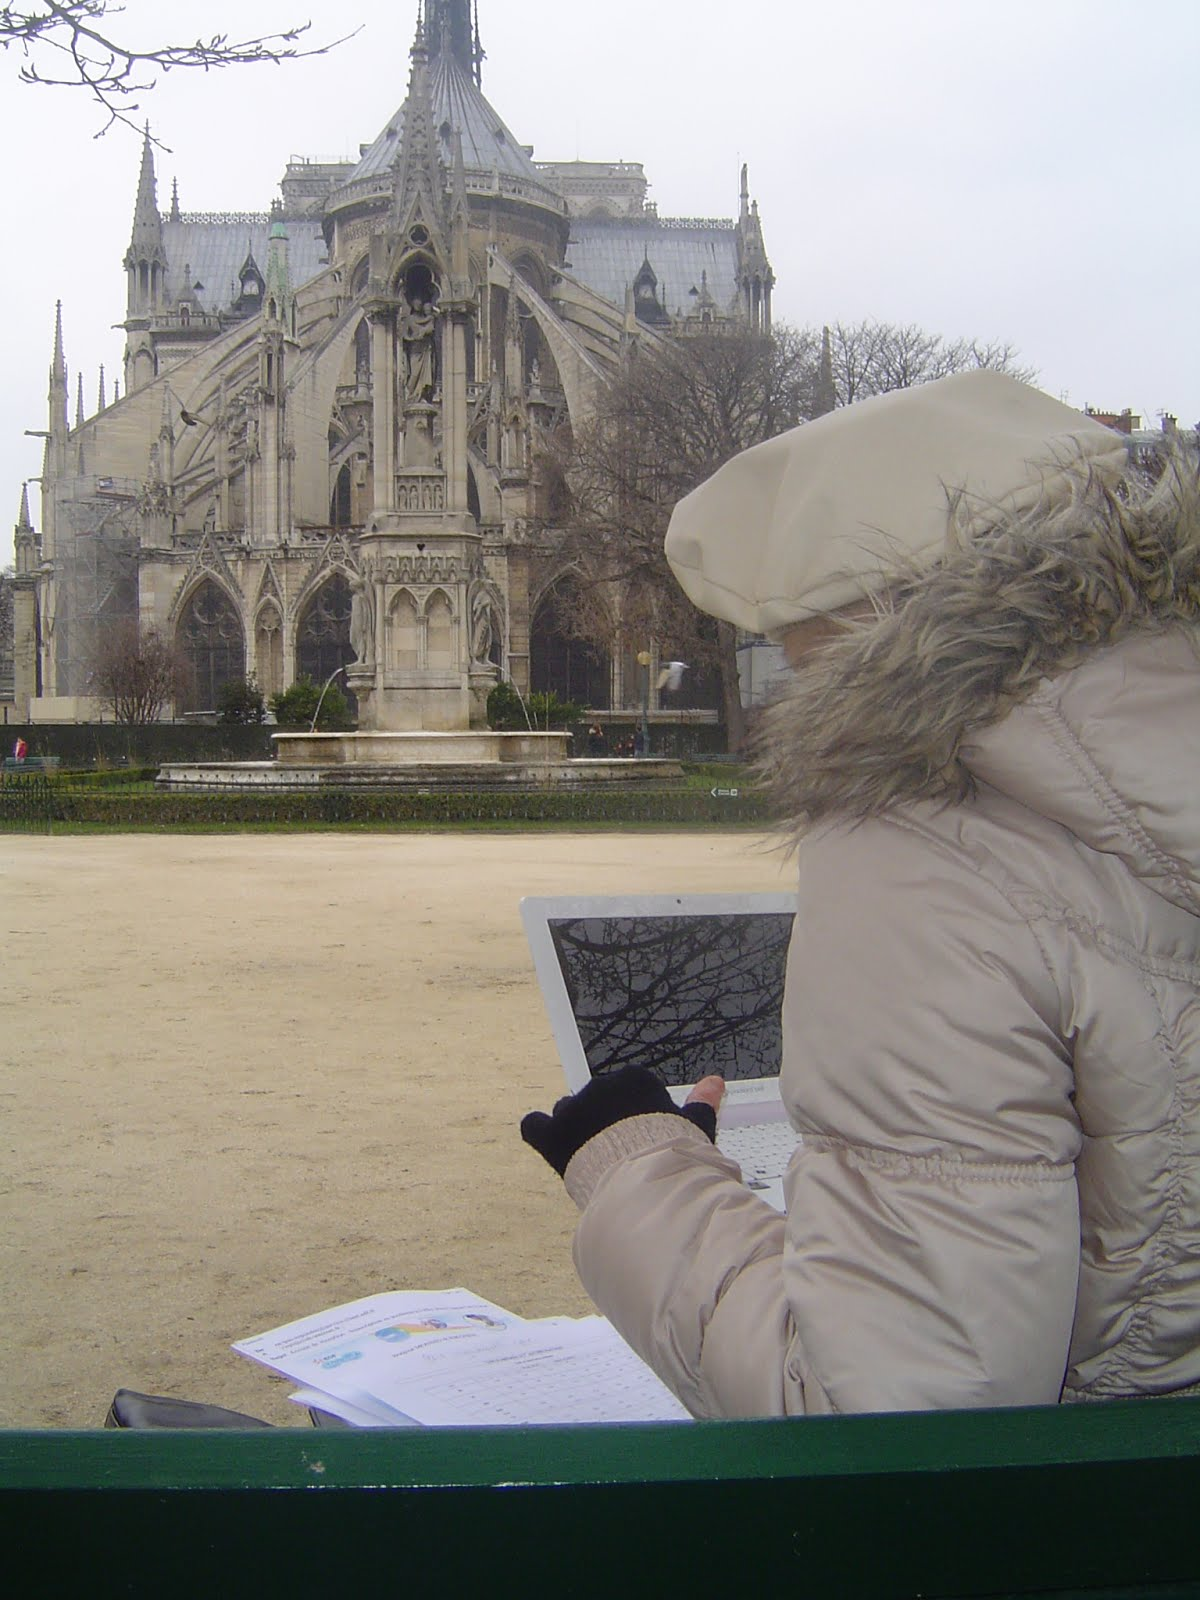 Freeloading is a full-time job in Paris